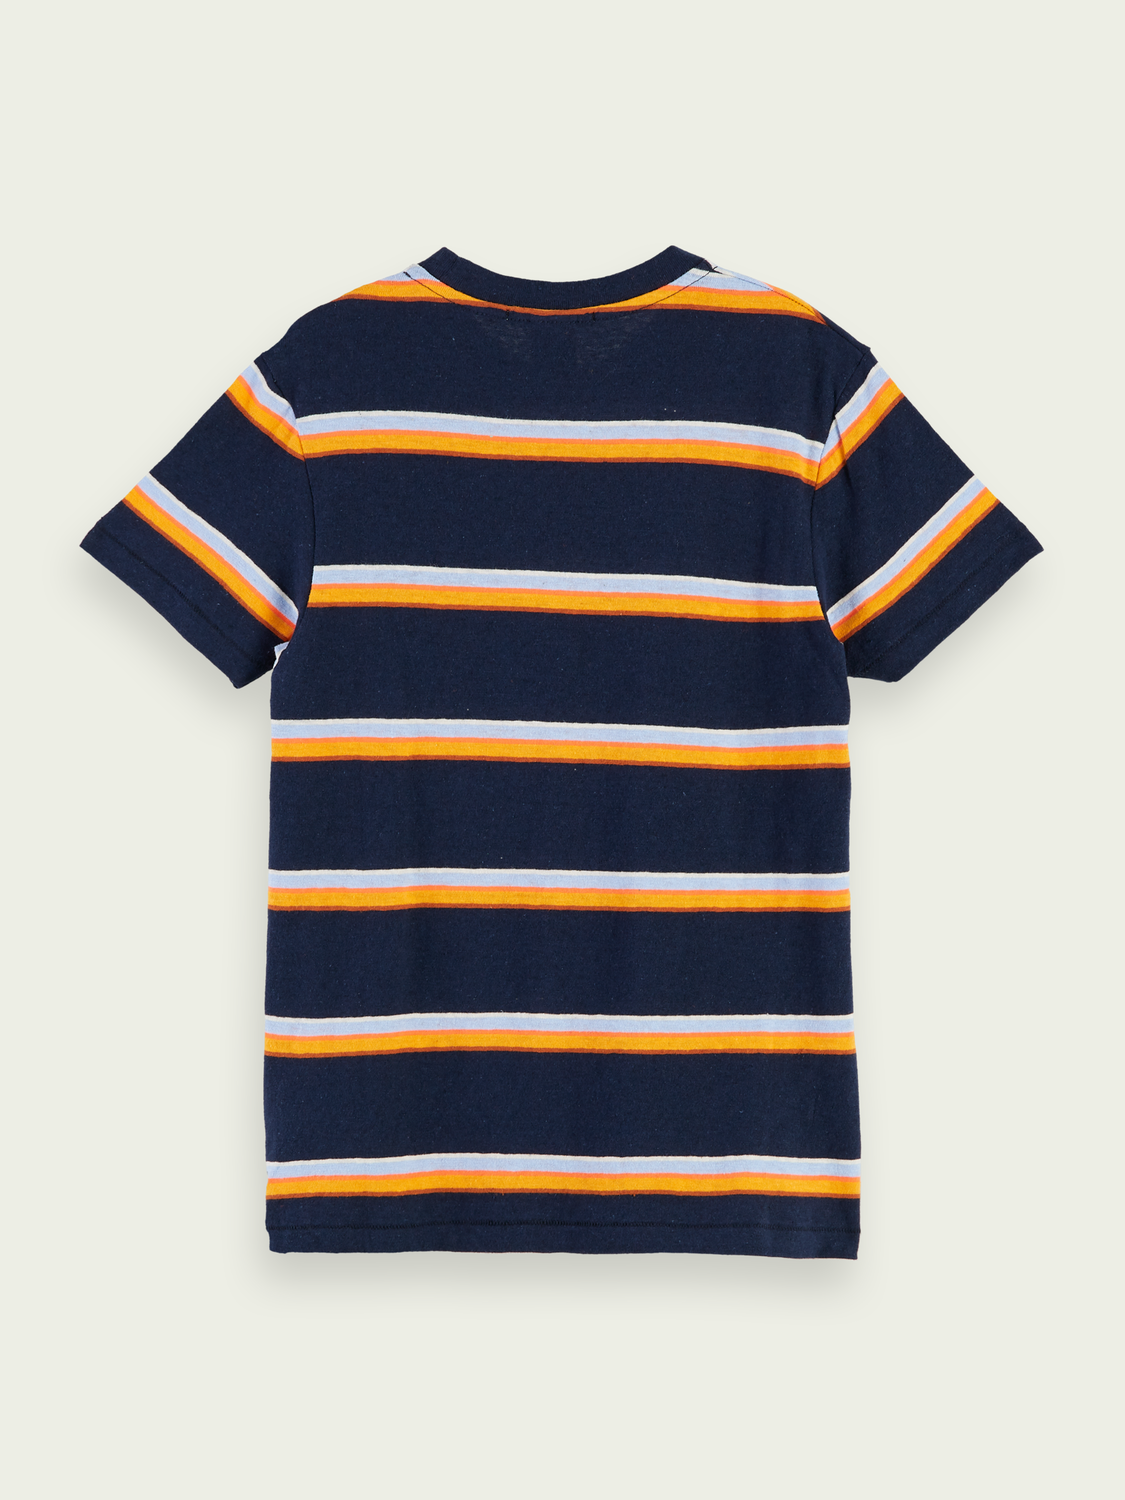 Kids Cotton-linen blend short sleeve t-shirt